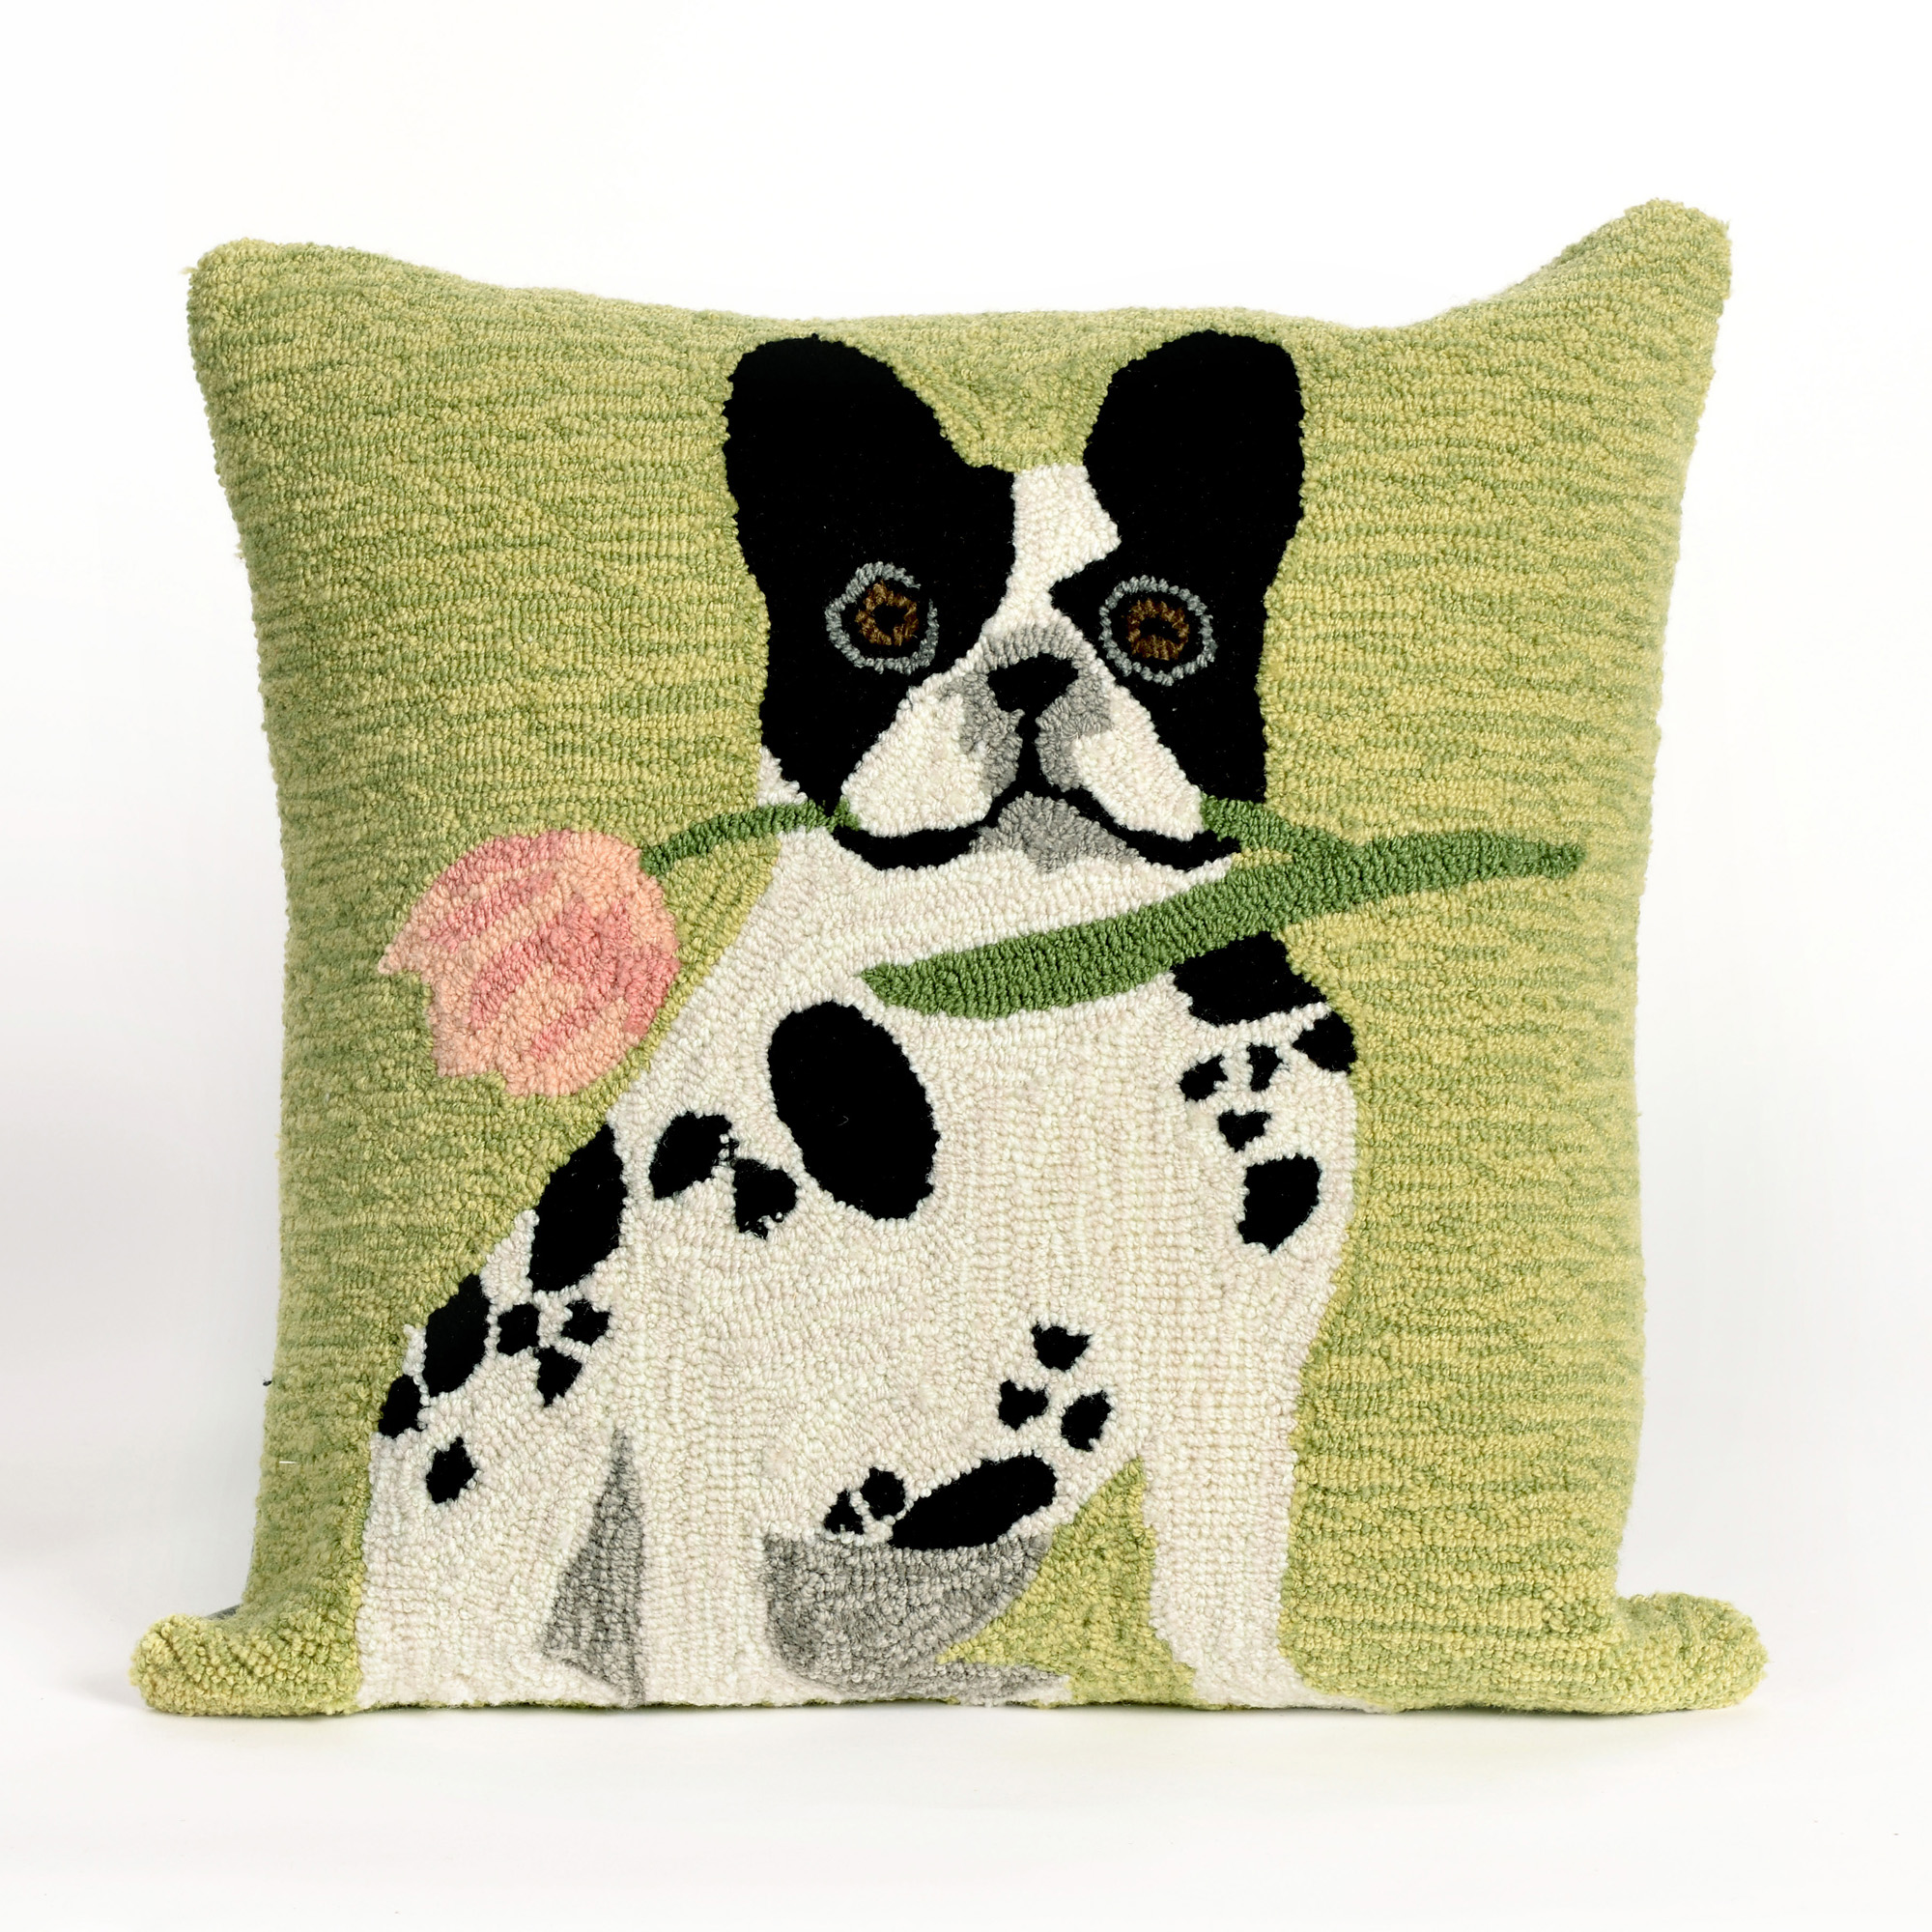 Liora Manne Frontporch Flowery Frenchy Throw Pillow